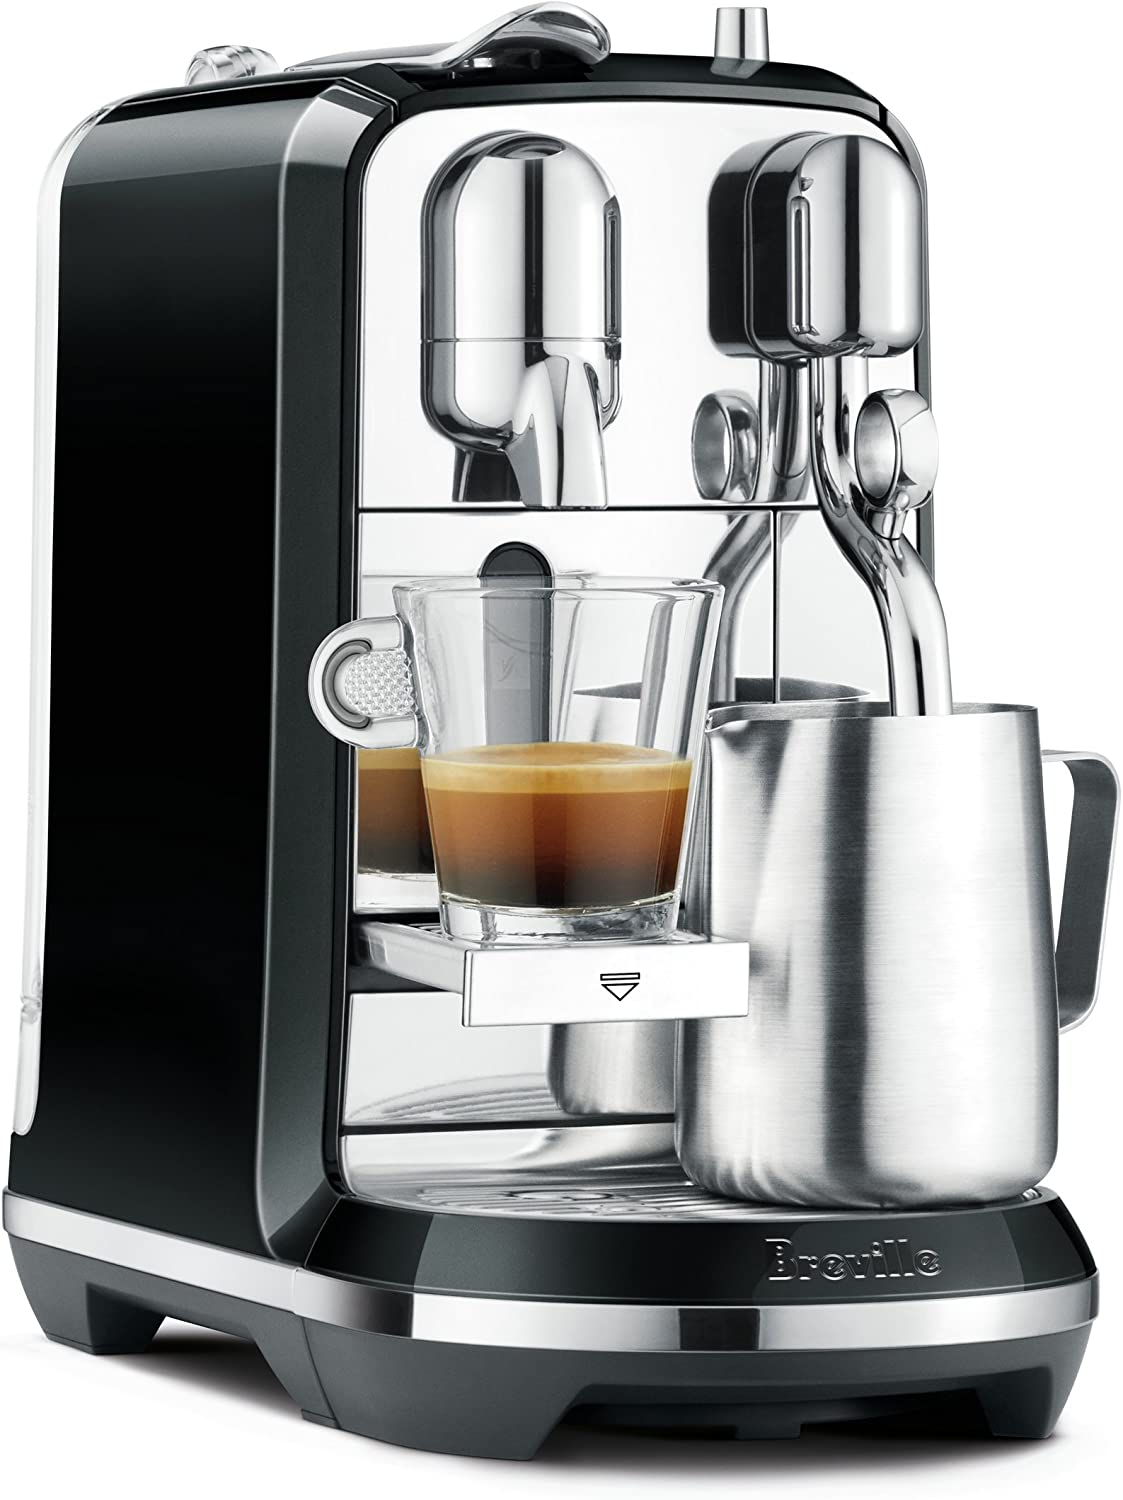 Best nespresso reviews consumer reports